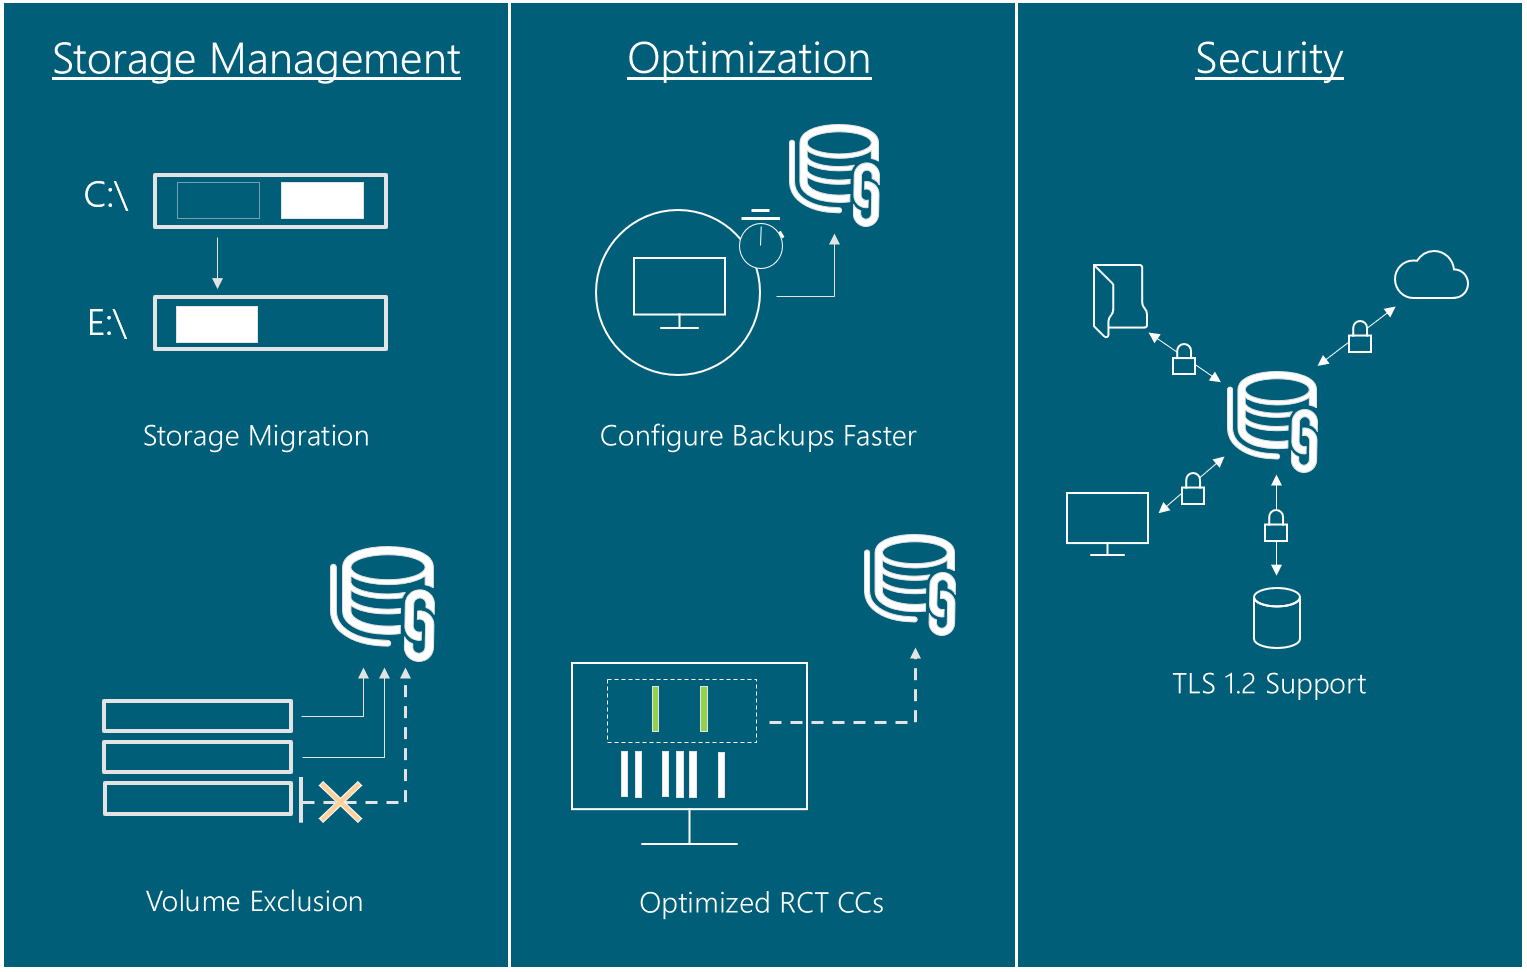 New Storage Management, Optimization, and Security Features in DPM 2016 UR4